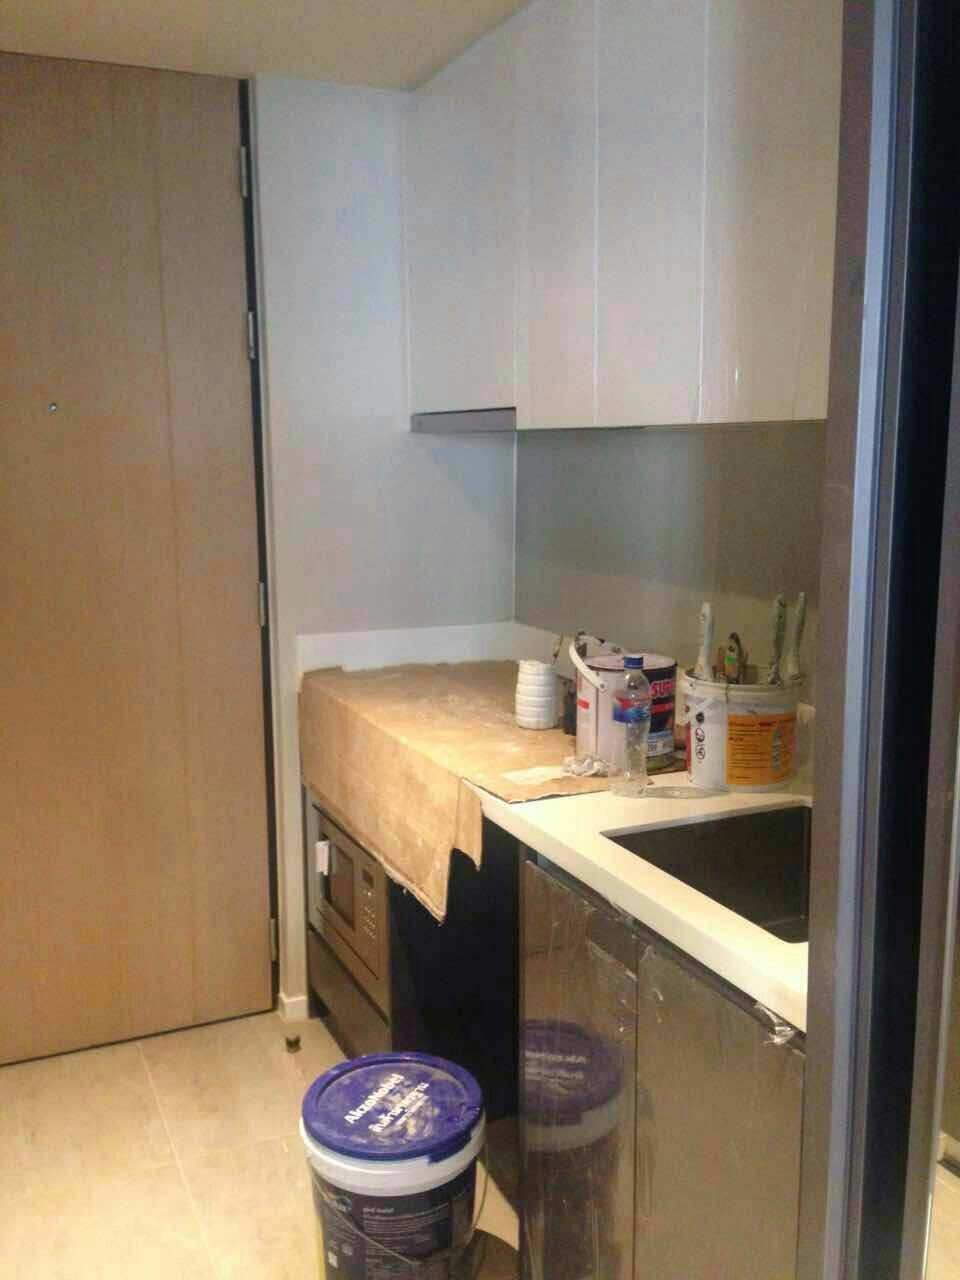 RE/MAX All Star Realty Agency's One Bedder (42sqm) at Circle S for Rent – walk to BTS Asoke or Nana 7